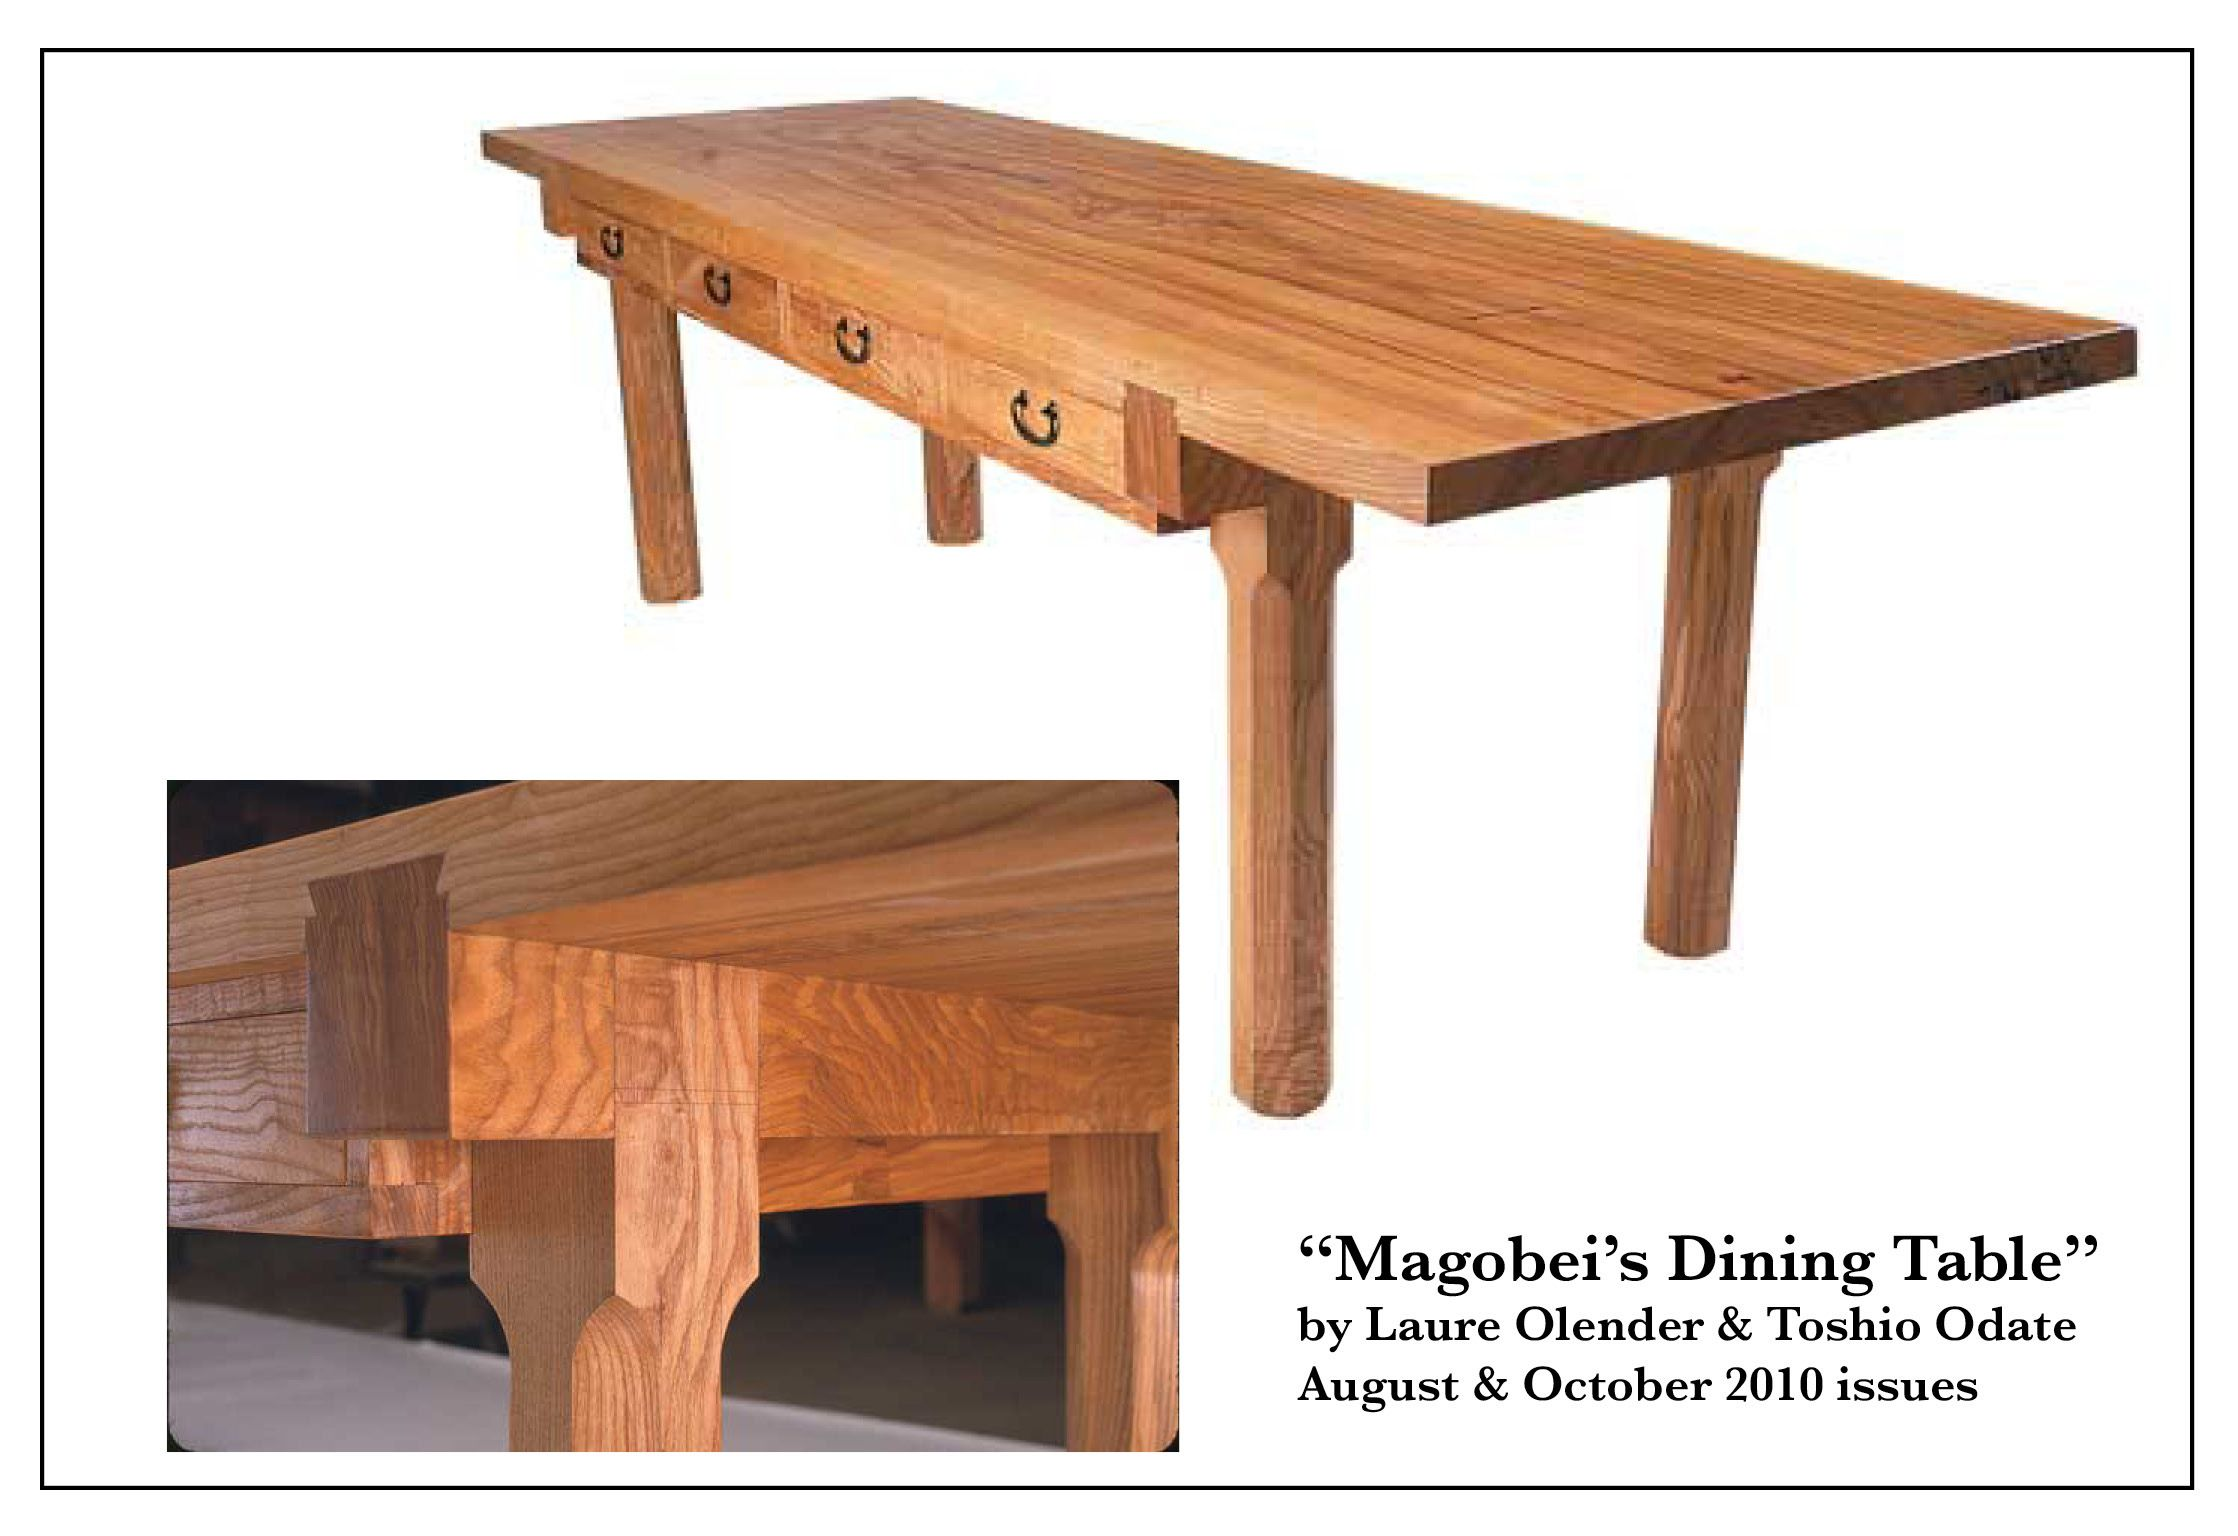 Magobei's Dining Table Part 1 Woodworking wood, Rustic